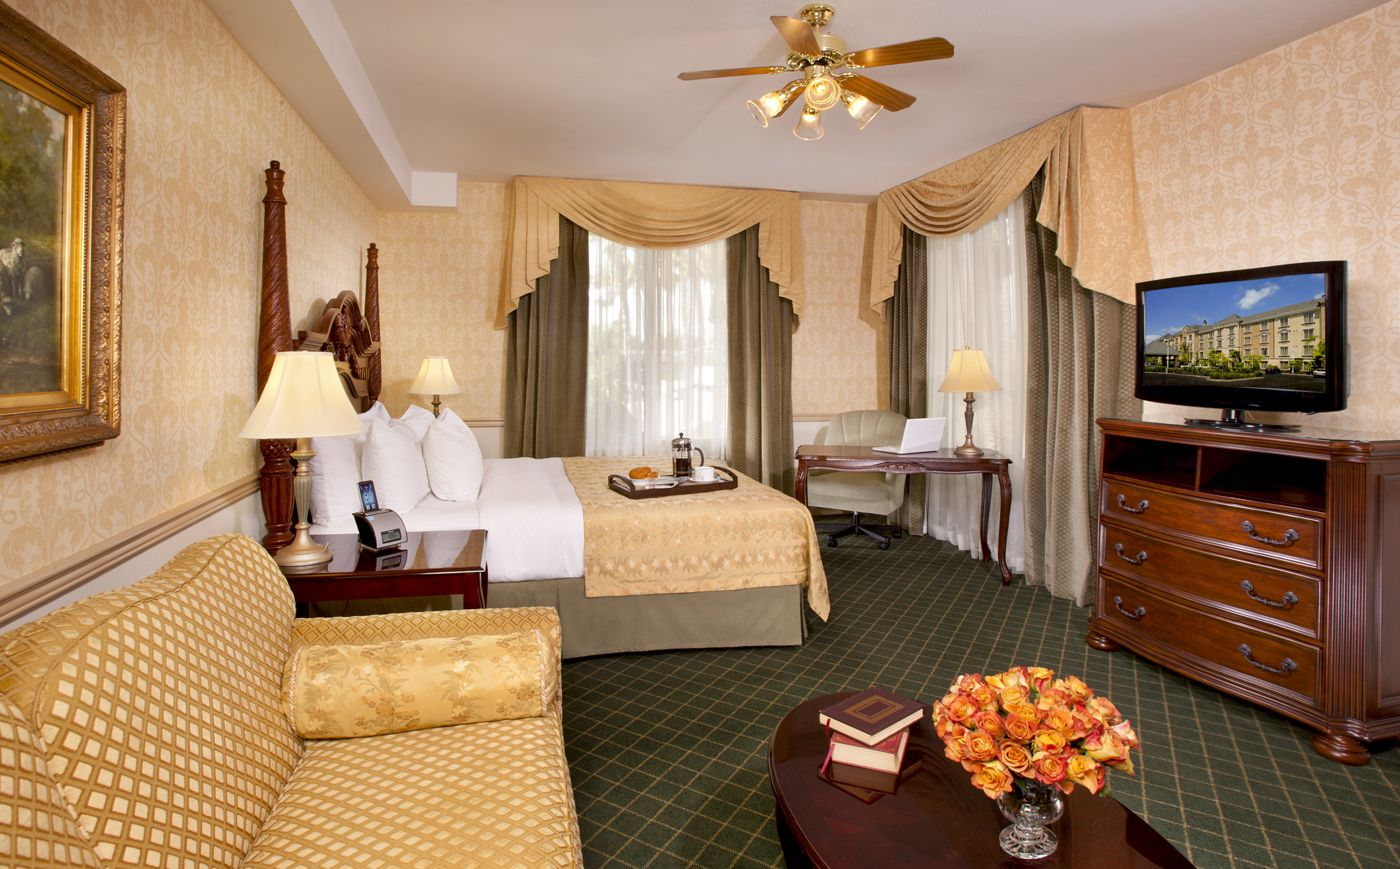 Deluxe King Room at Ayres Hotel Anaheim